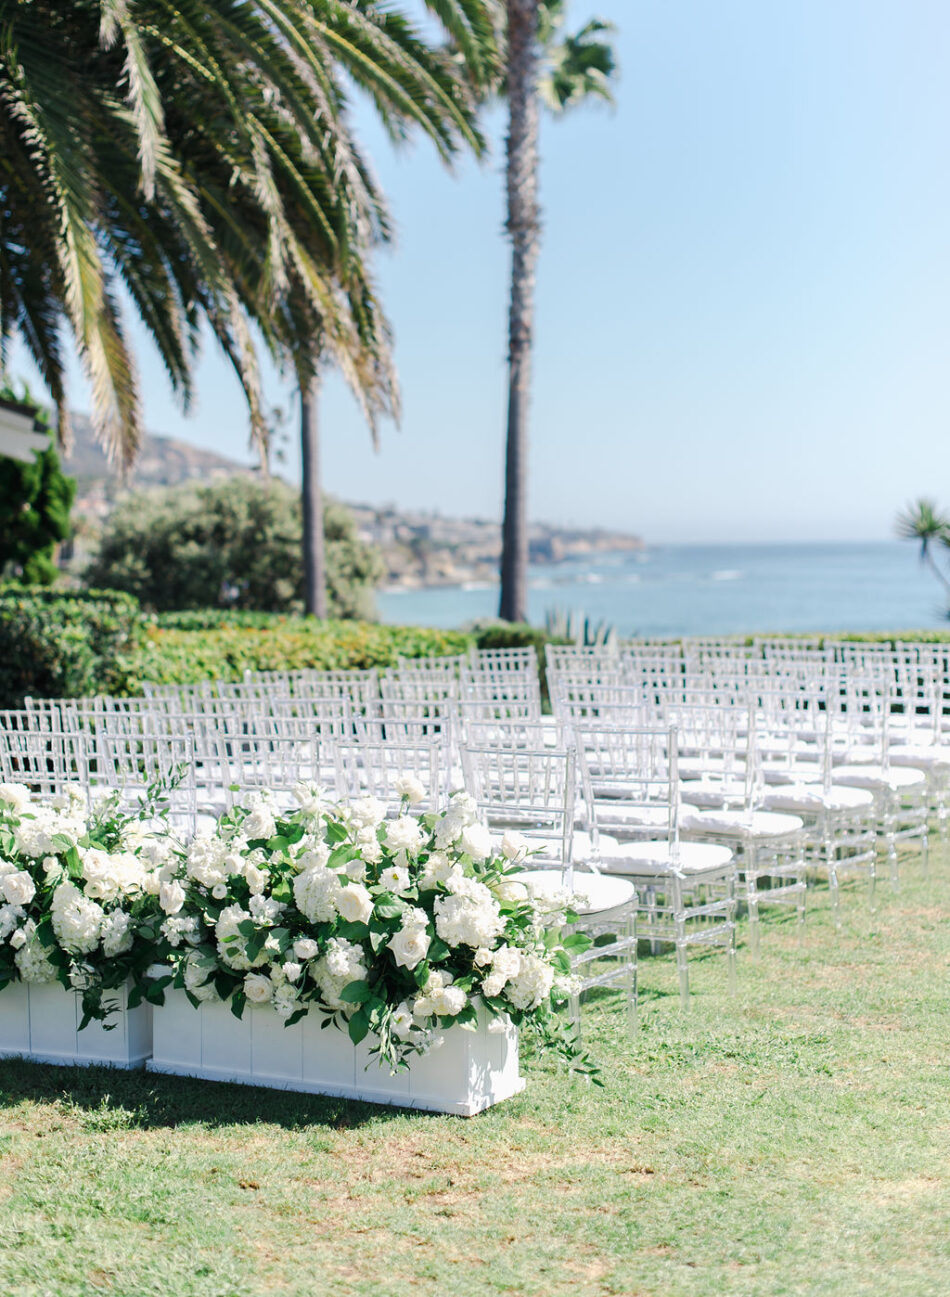 all-white ceremony, white ceremony blooms, white ceremony decor, gorgeous oceanfront wedding, floral design, florist, wedding florist, wedding flowers, orange county weddings, orange county wedding florist, orange county florist, orange county floral design, flowers by cina